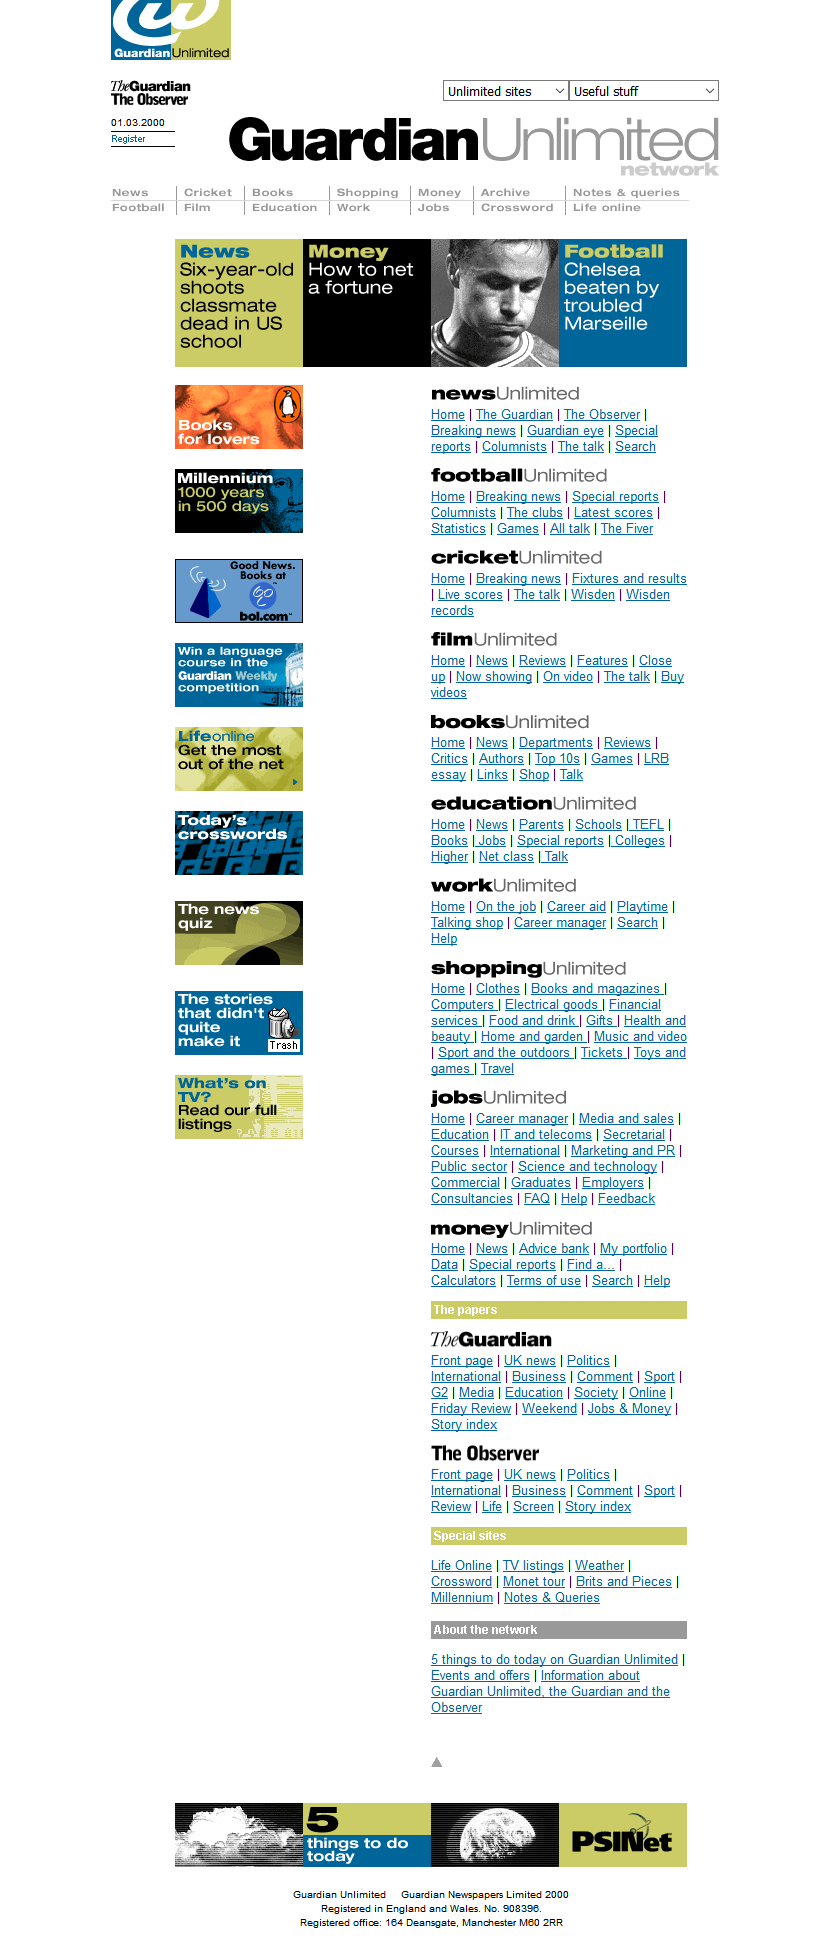 Guardian Unlimited in 2000